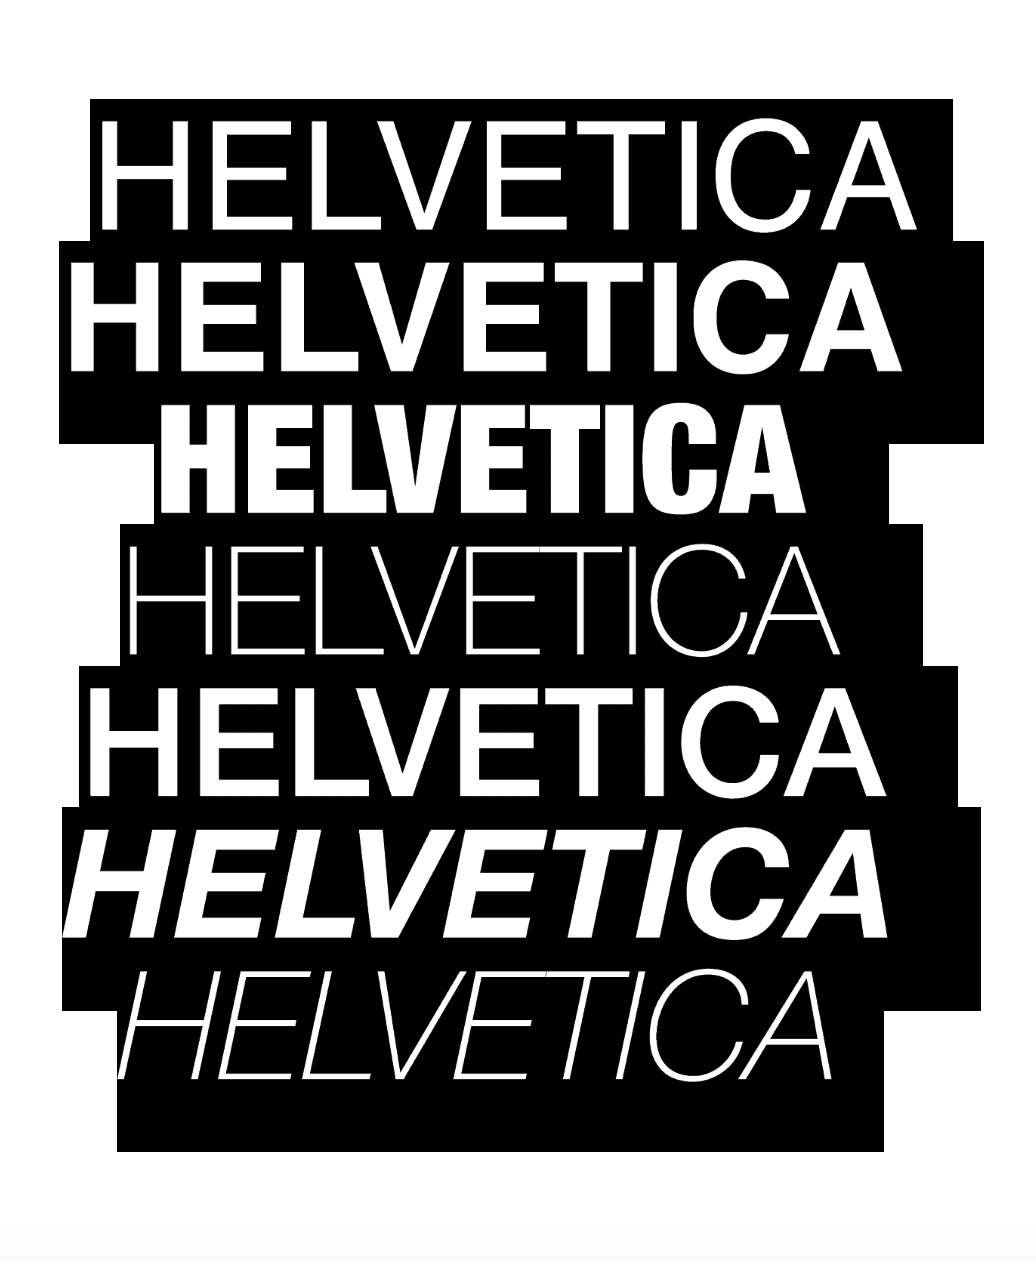 Why Helvetica?